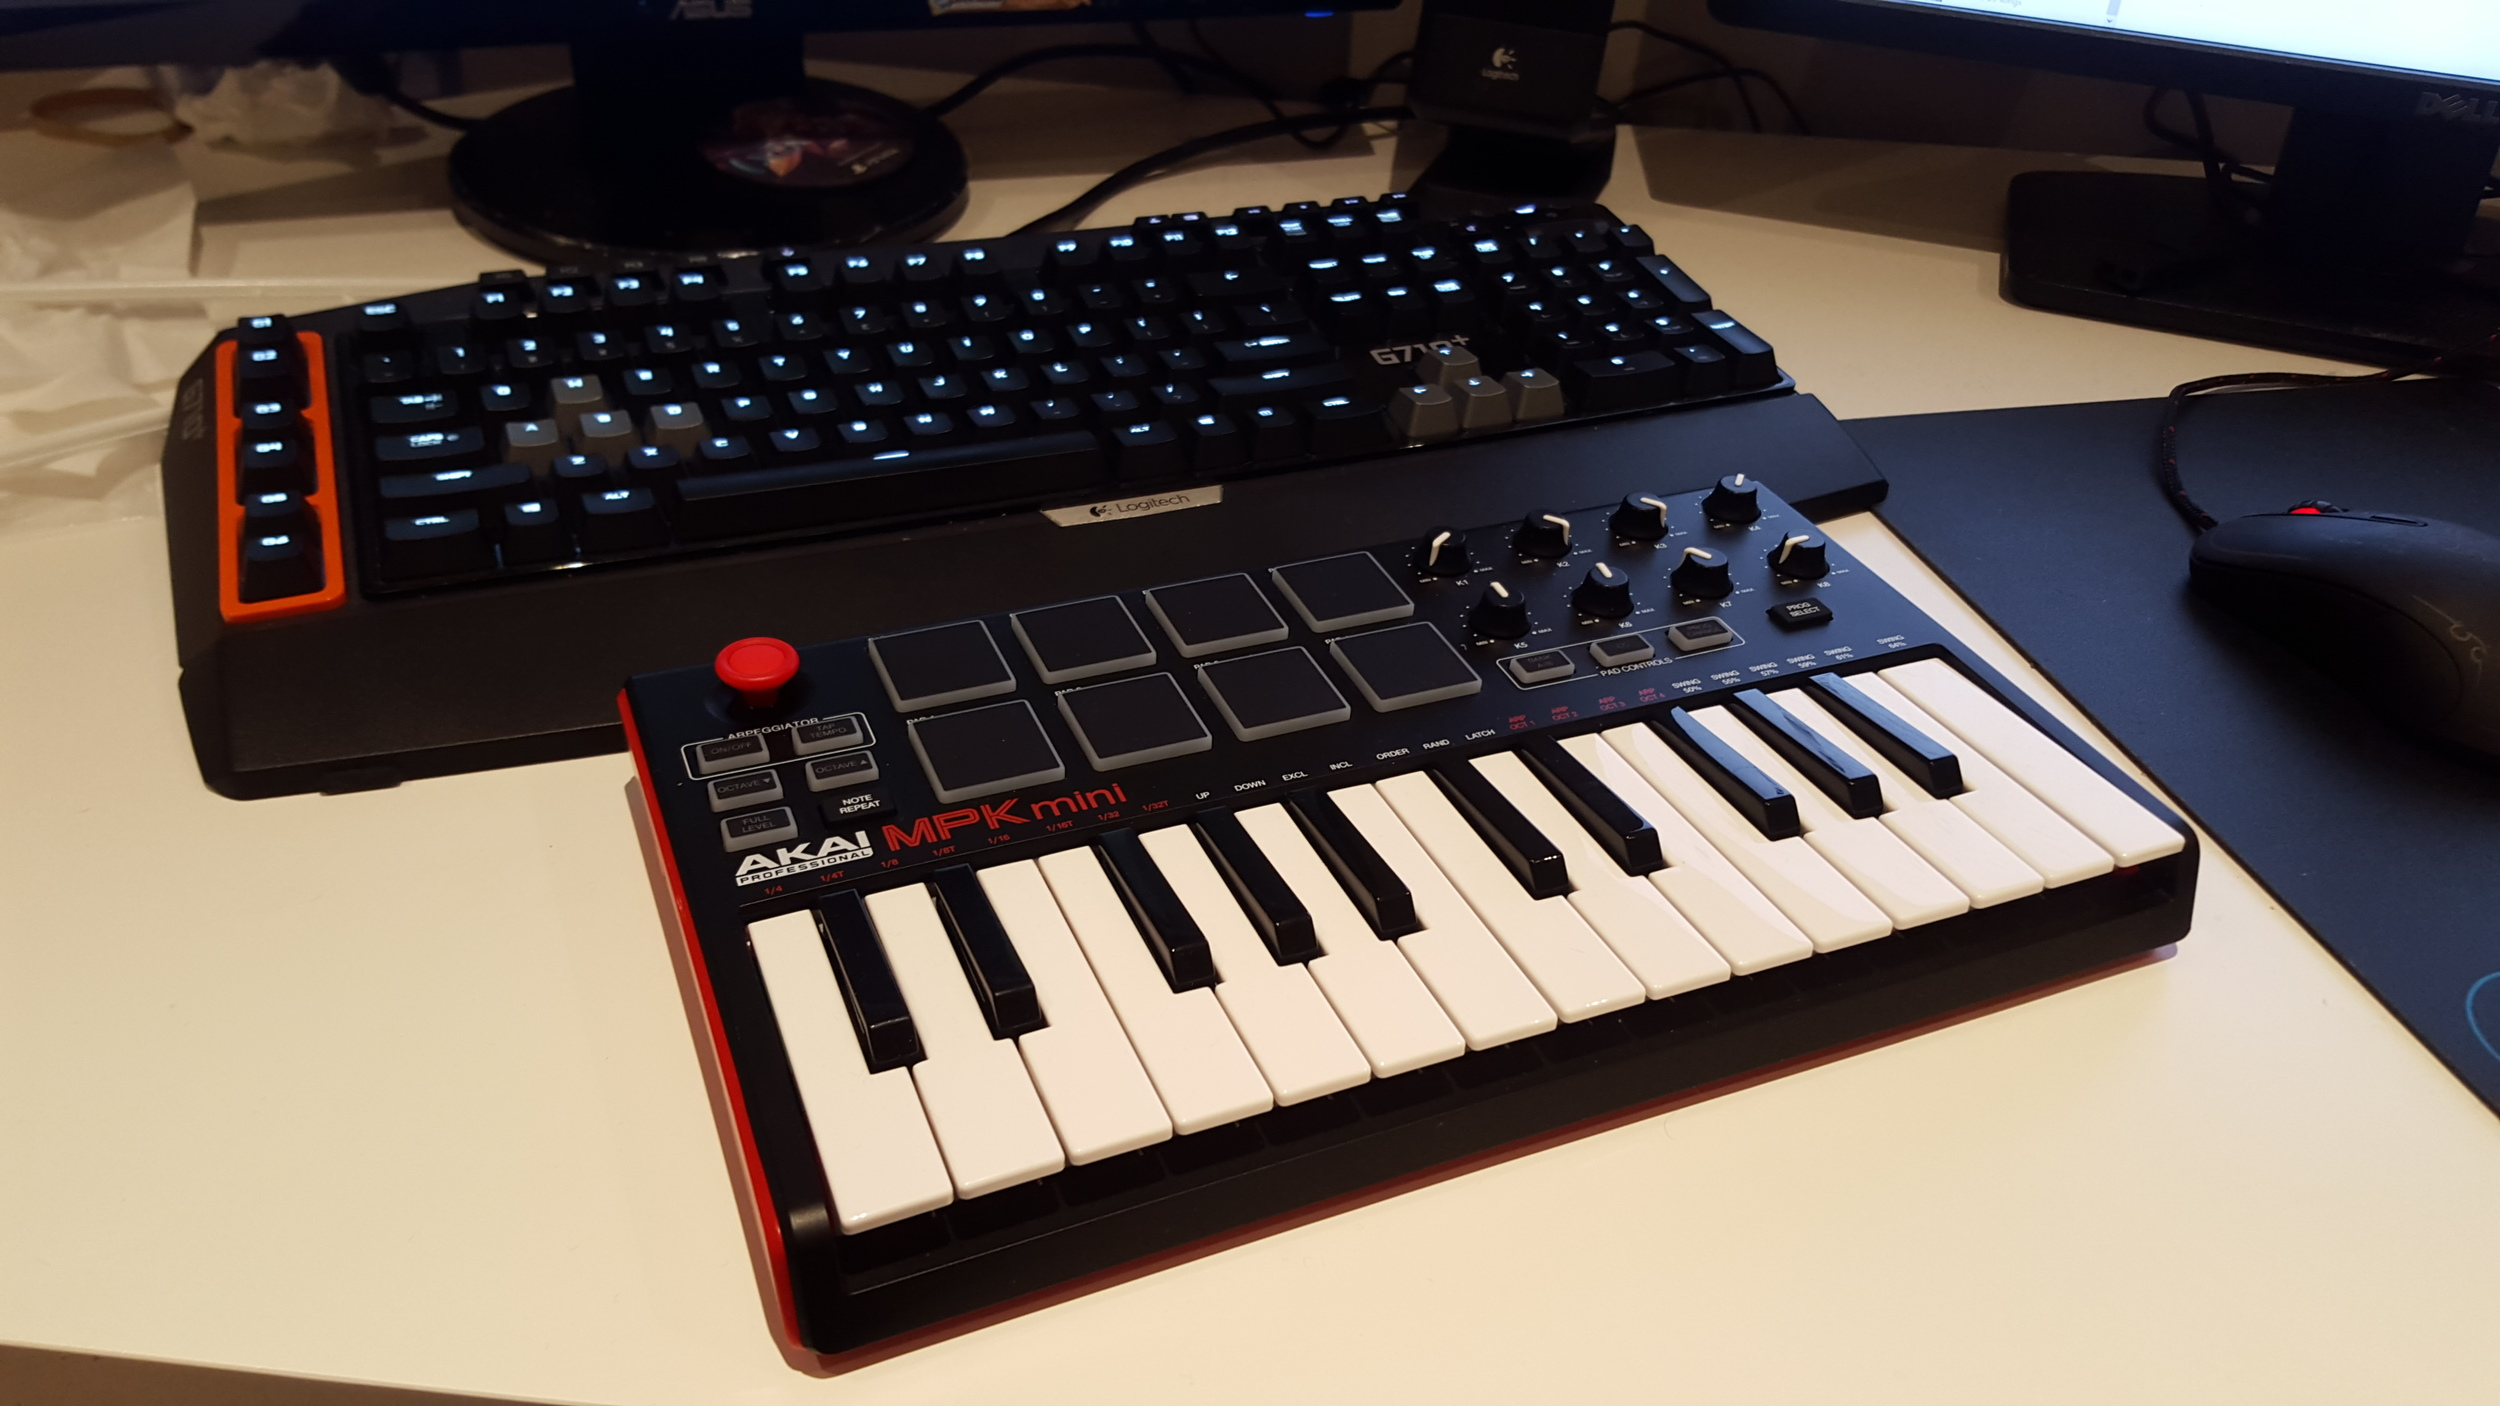 MIDI keyboard used to create the melody and beats to be transcribed digitally.